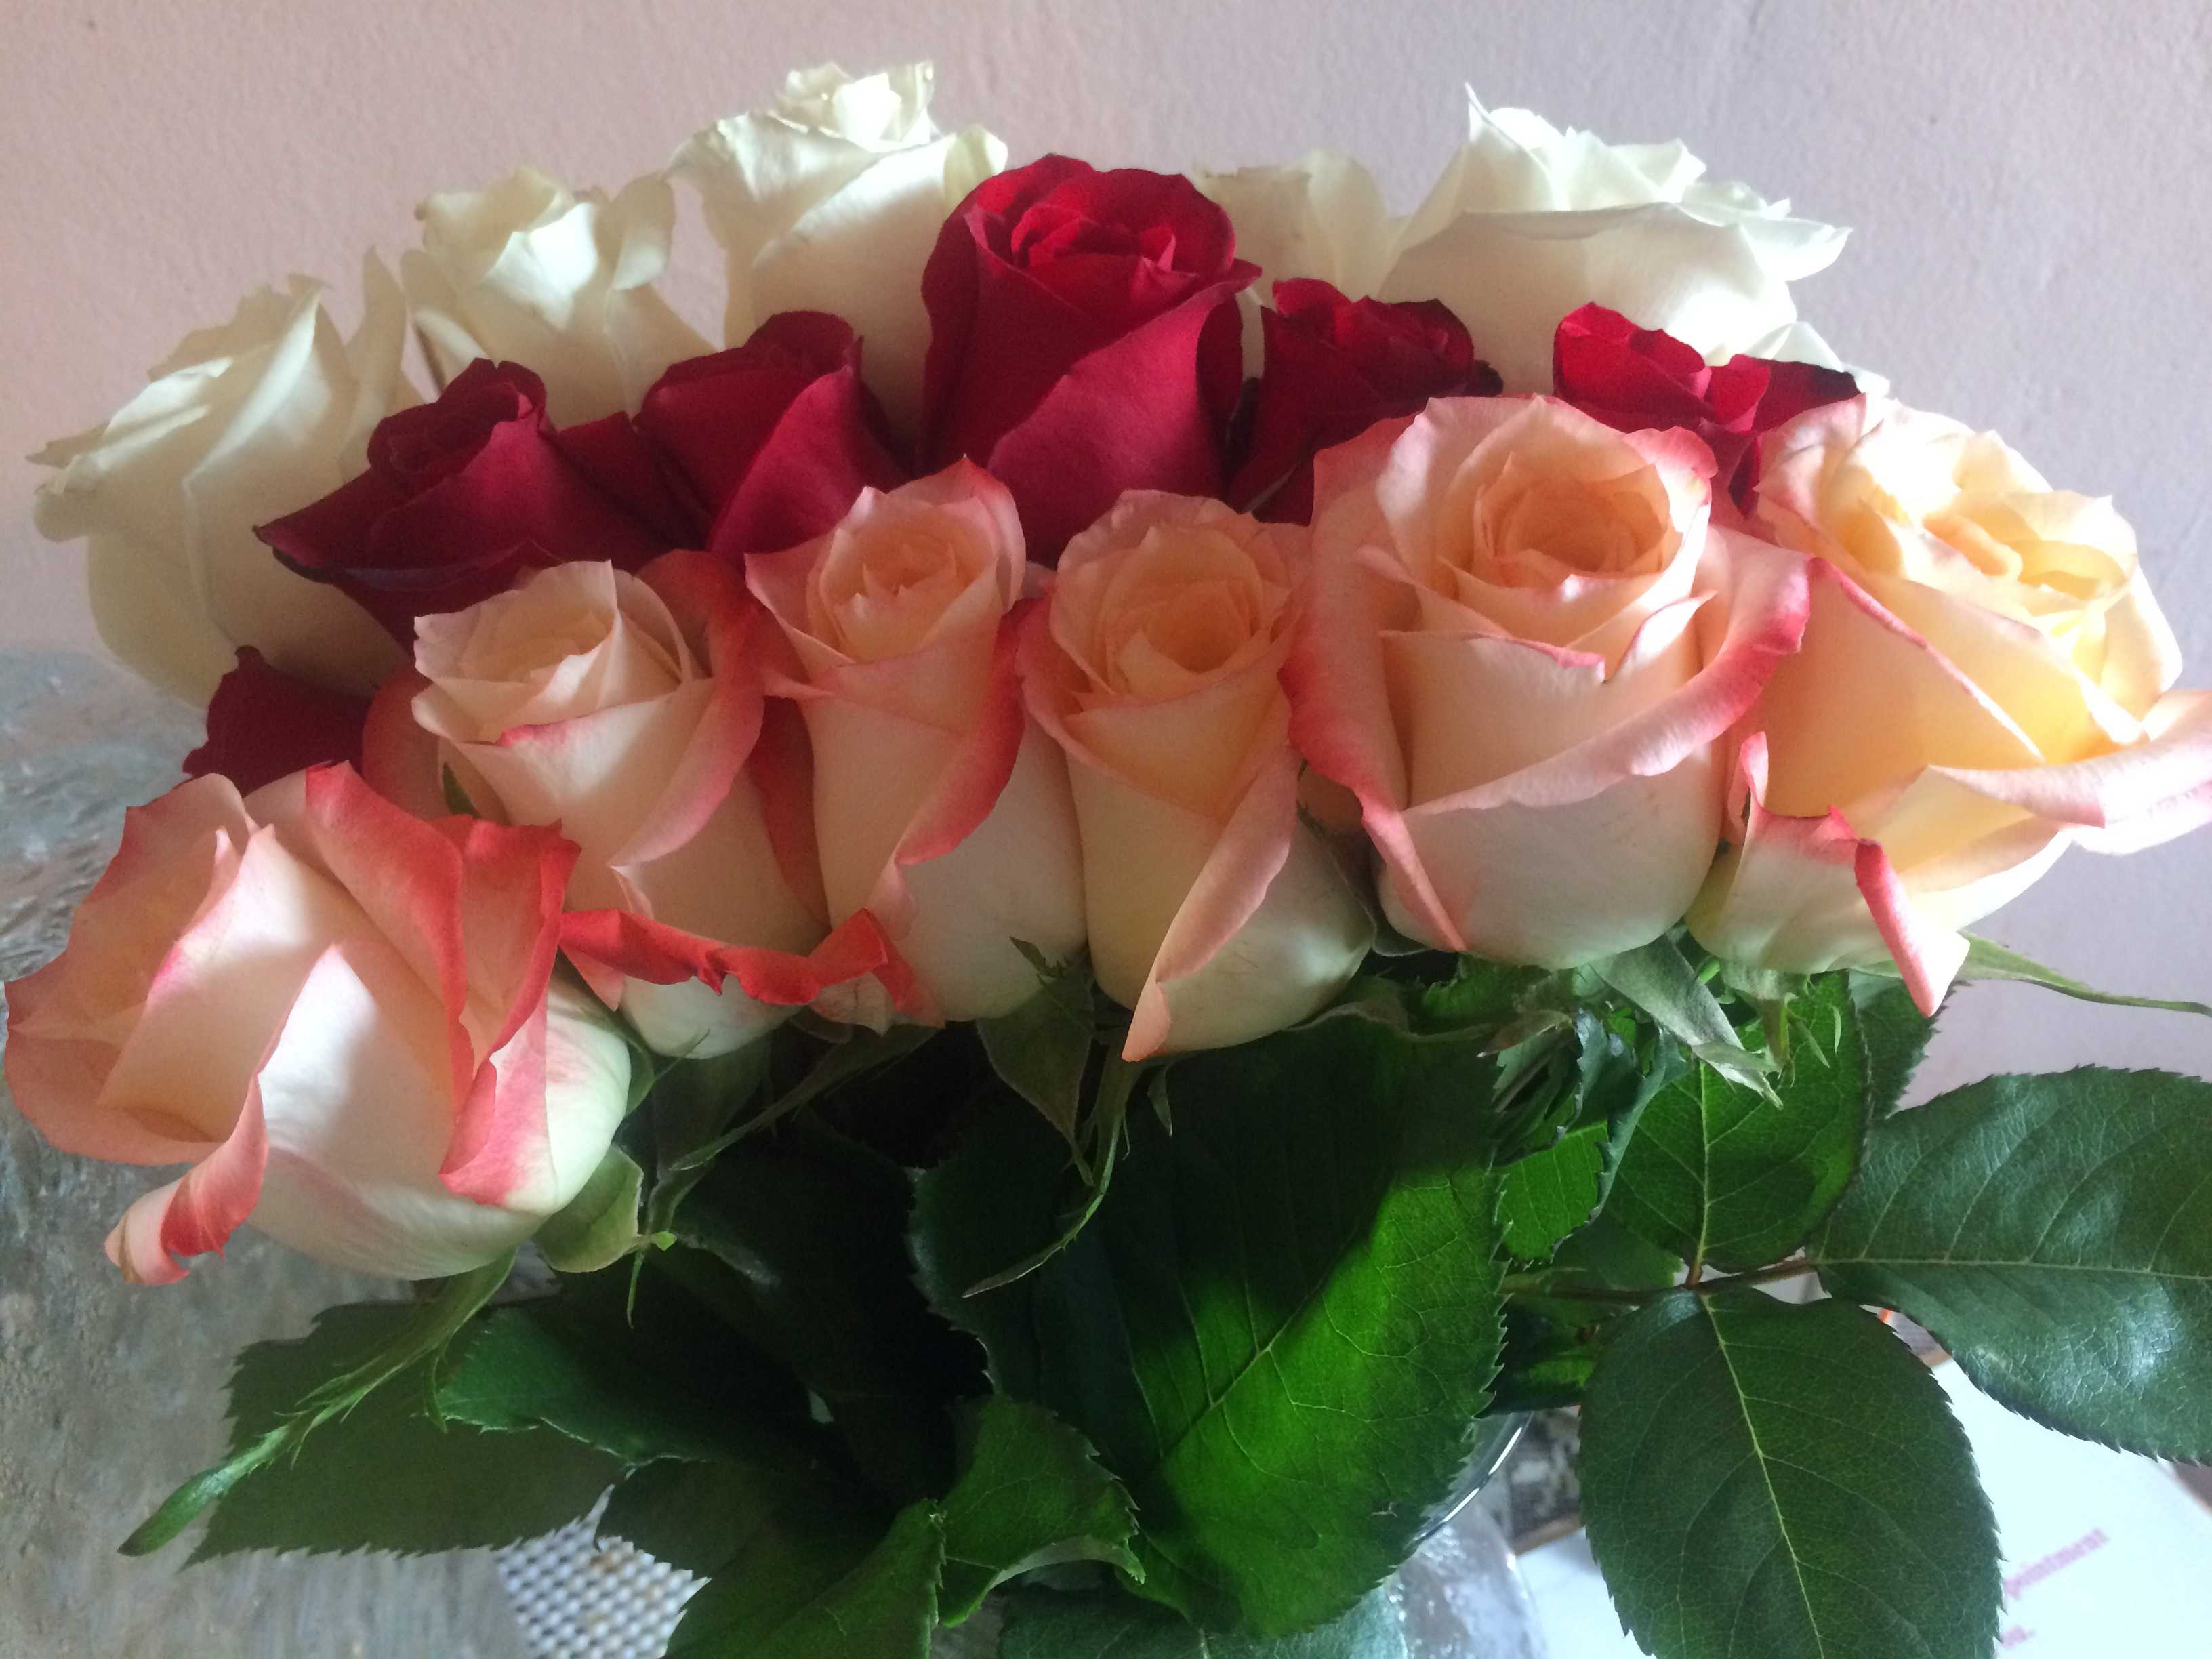 The gift of roses!